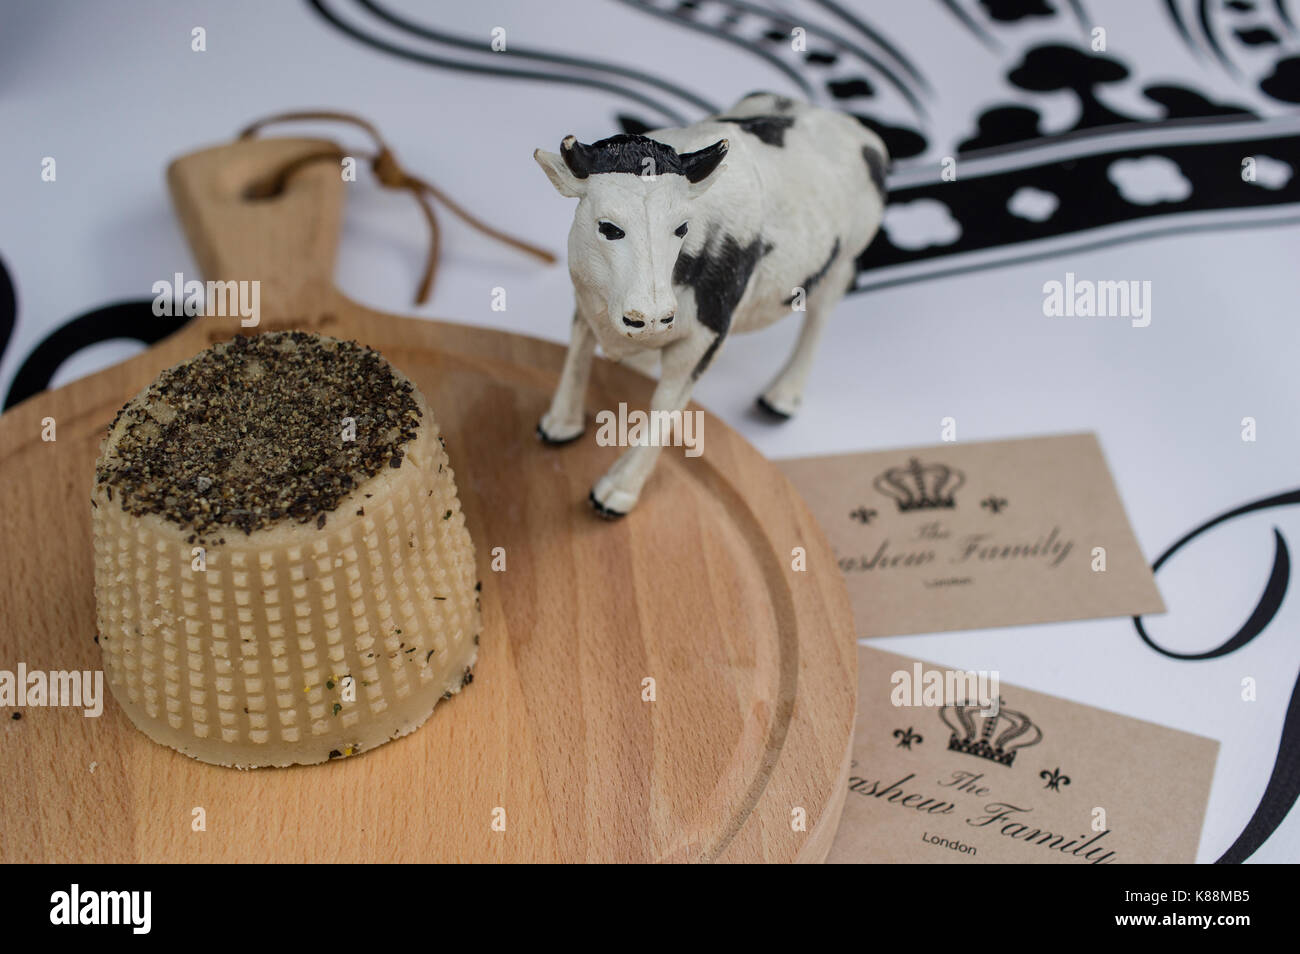 A small plastic black and white cow figurine guards the vegan fermented cashew cheese made by The Cashew Family - Stock Image